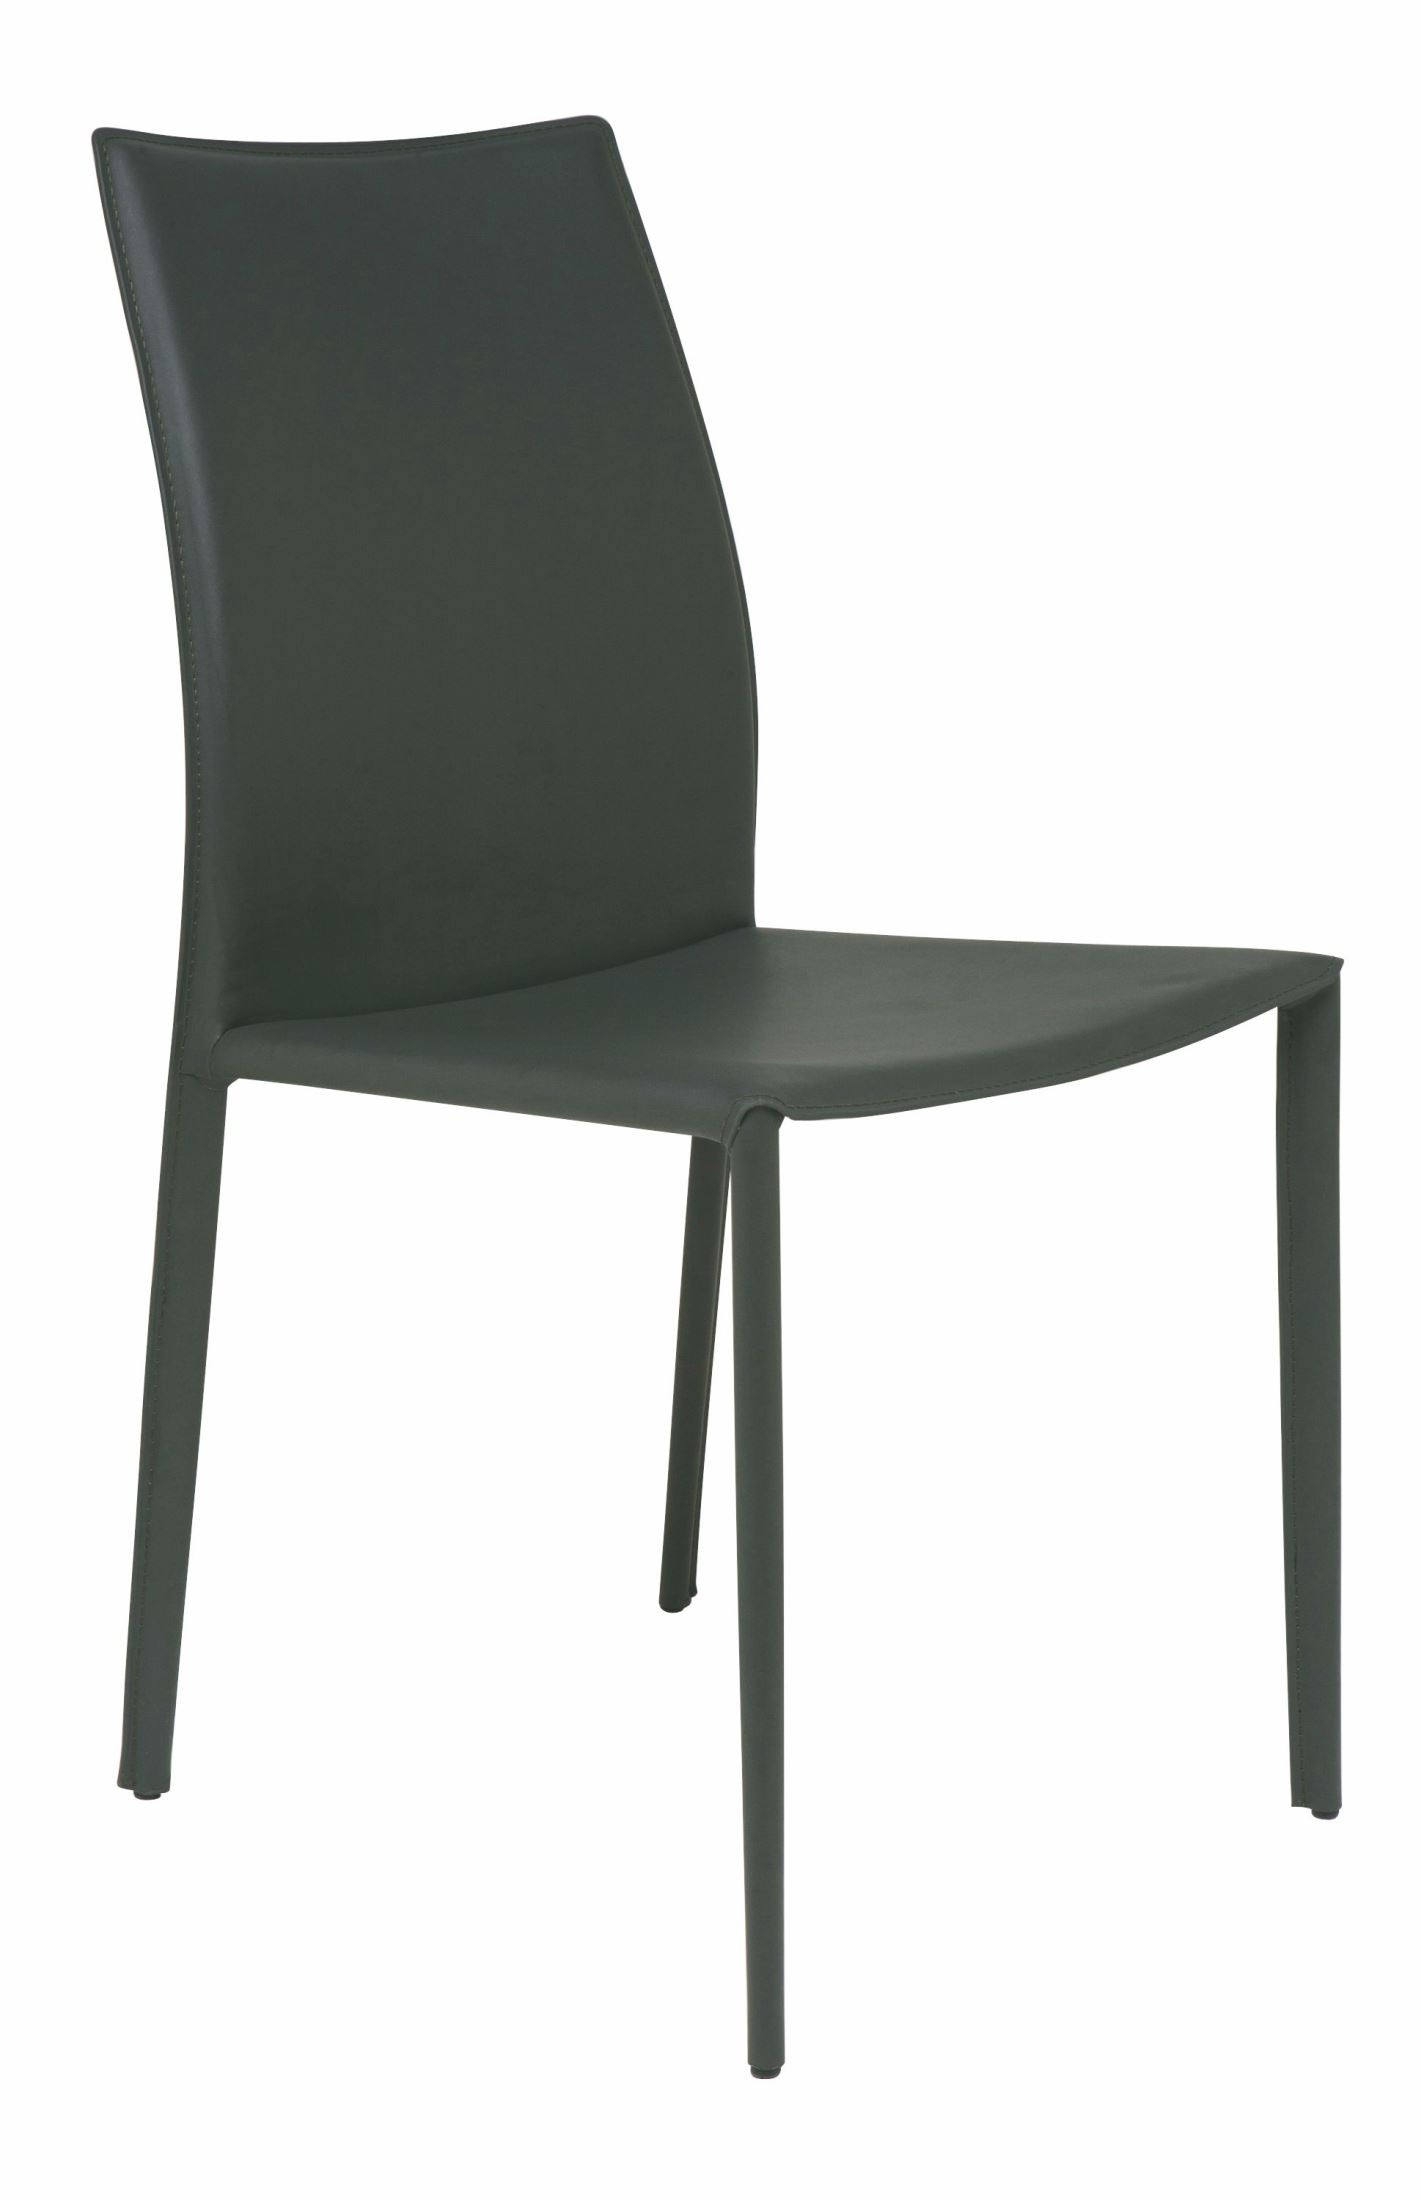 sienna dark grey leather dining chair from nuevo coleman furniture. Black Bedroom Furniture Sets. Home Design Ideas